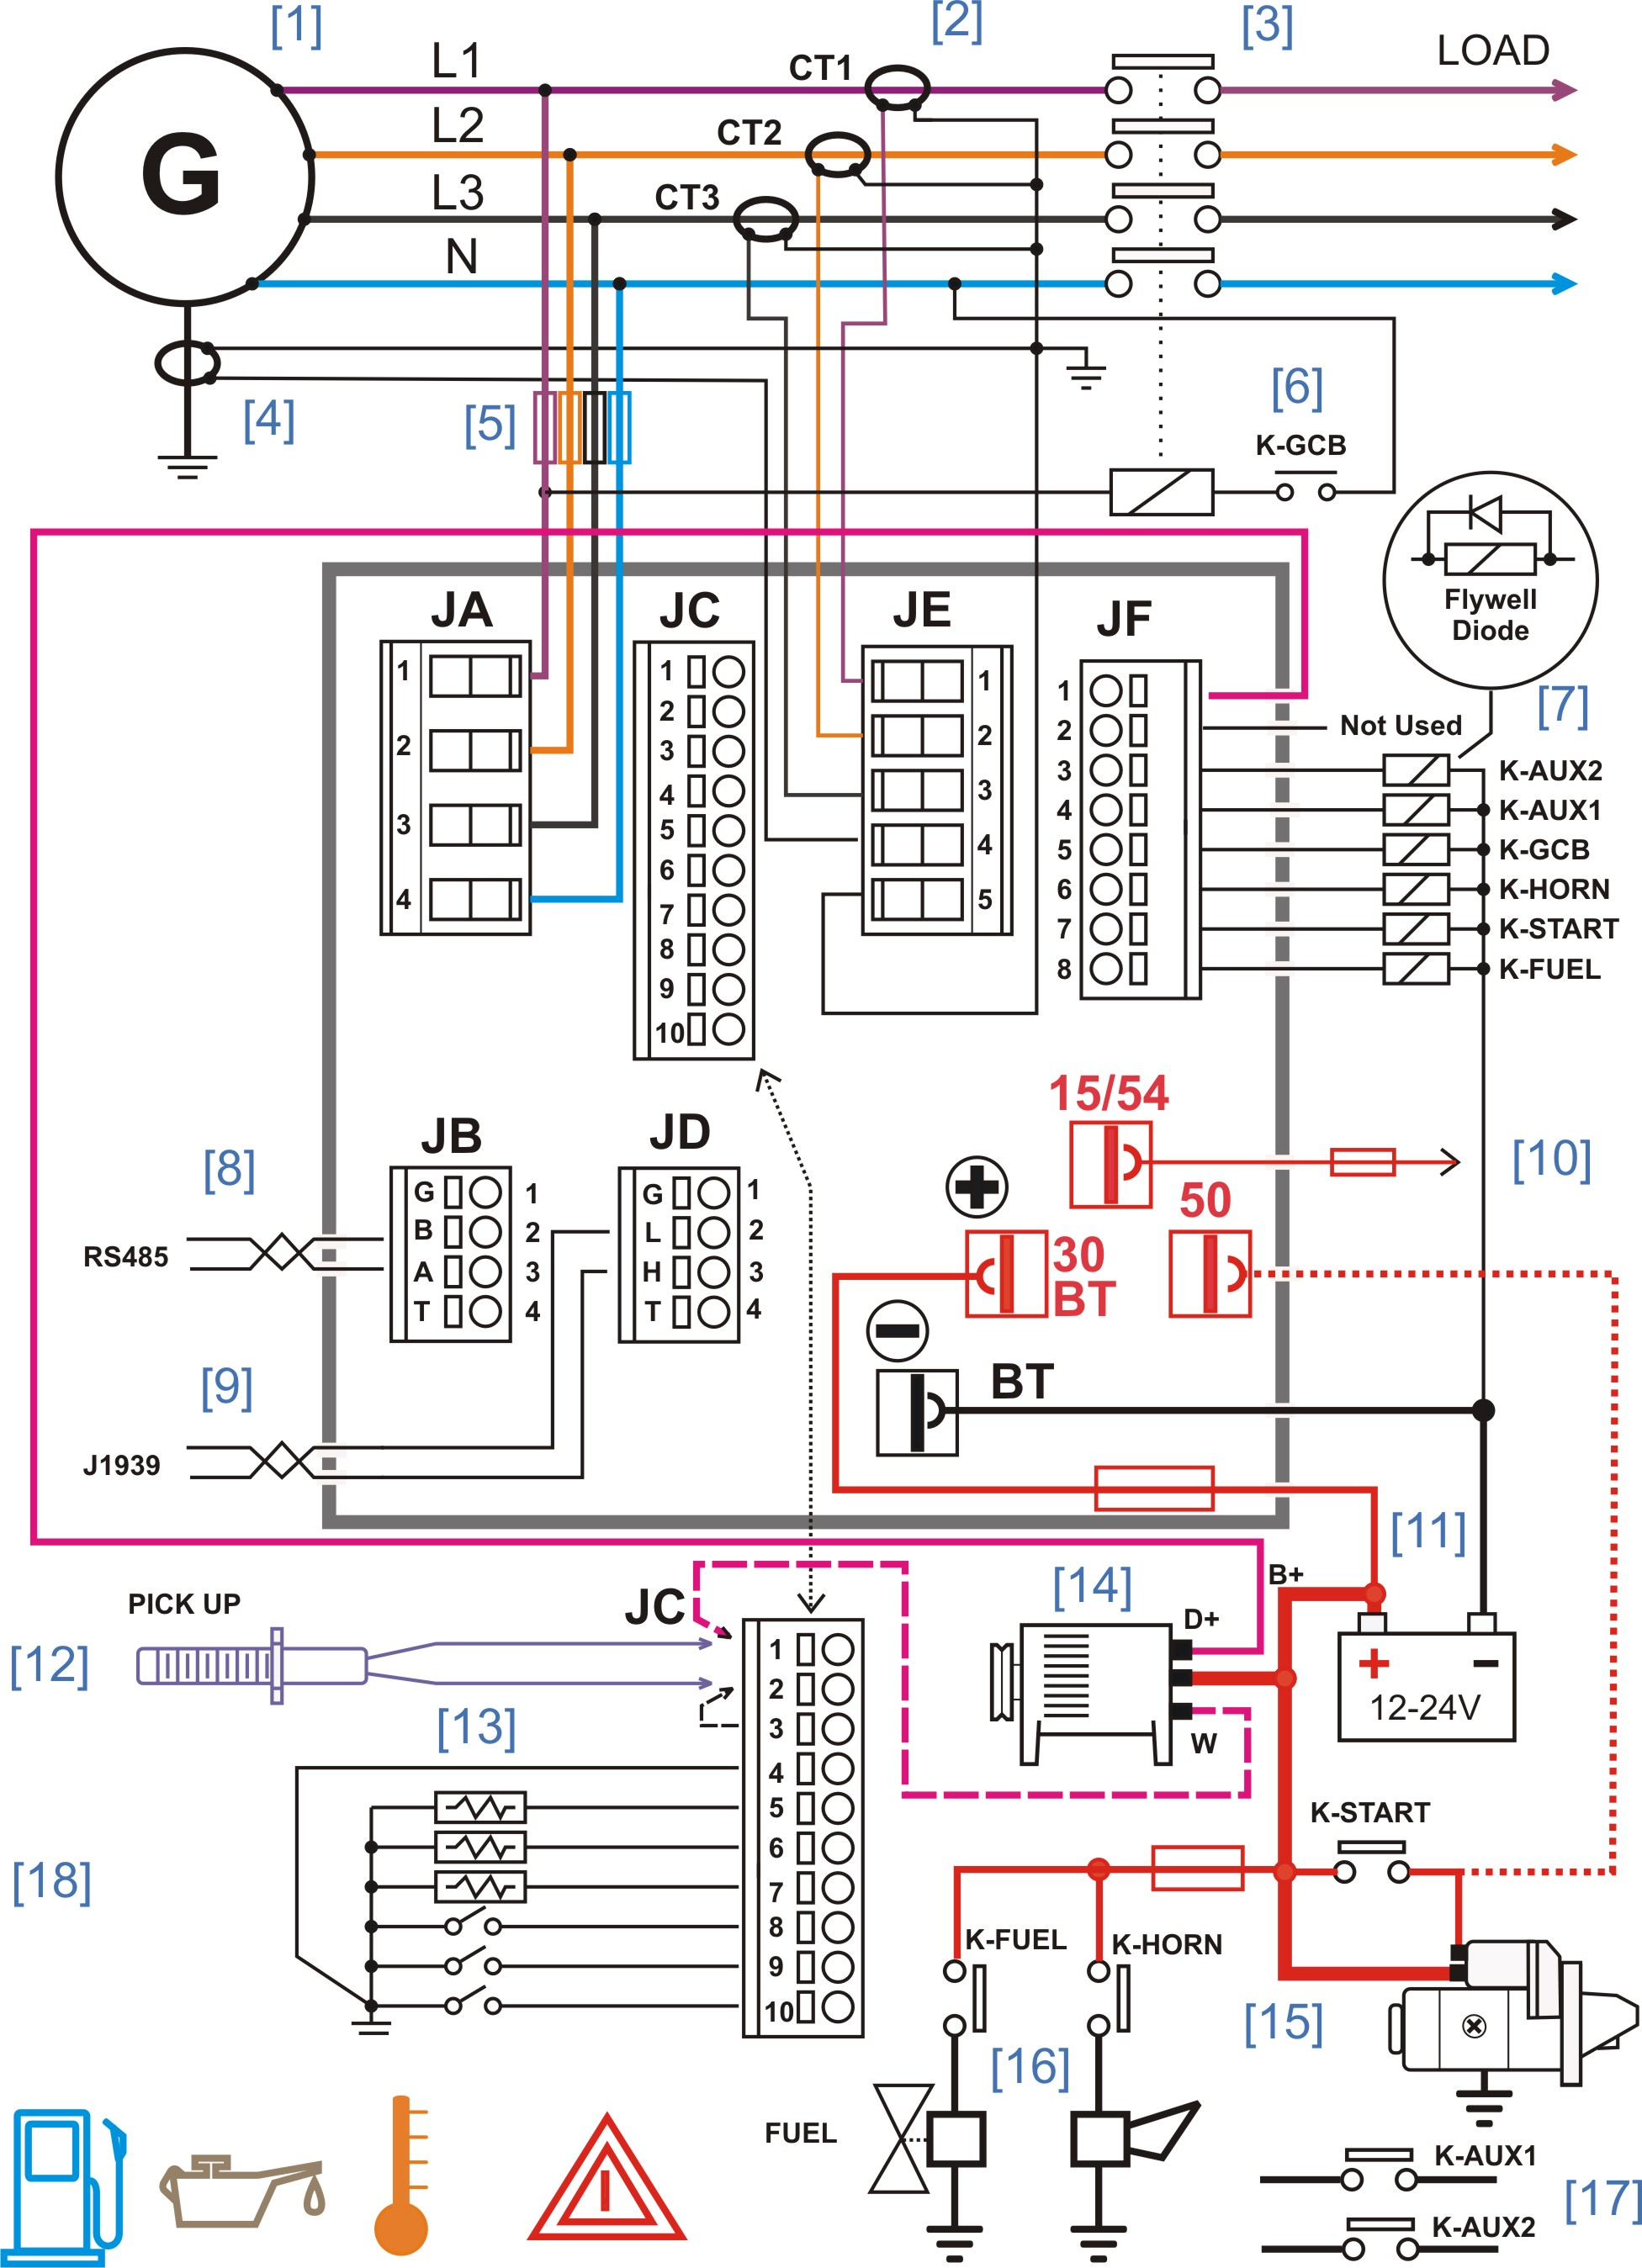 generator panel wiring diagram images